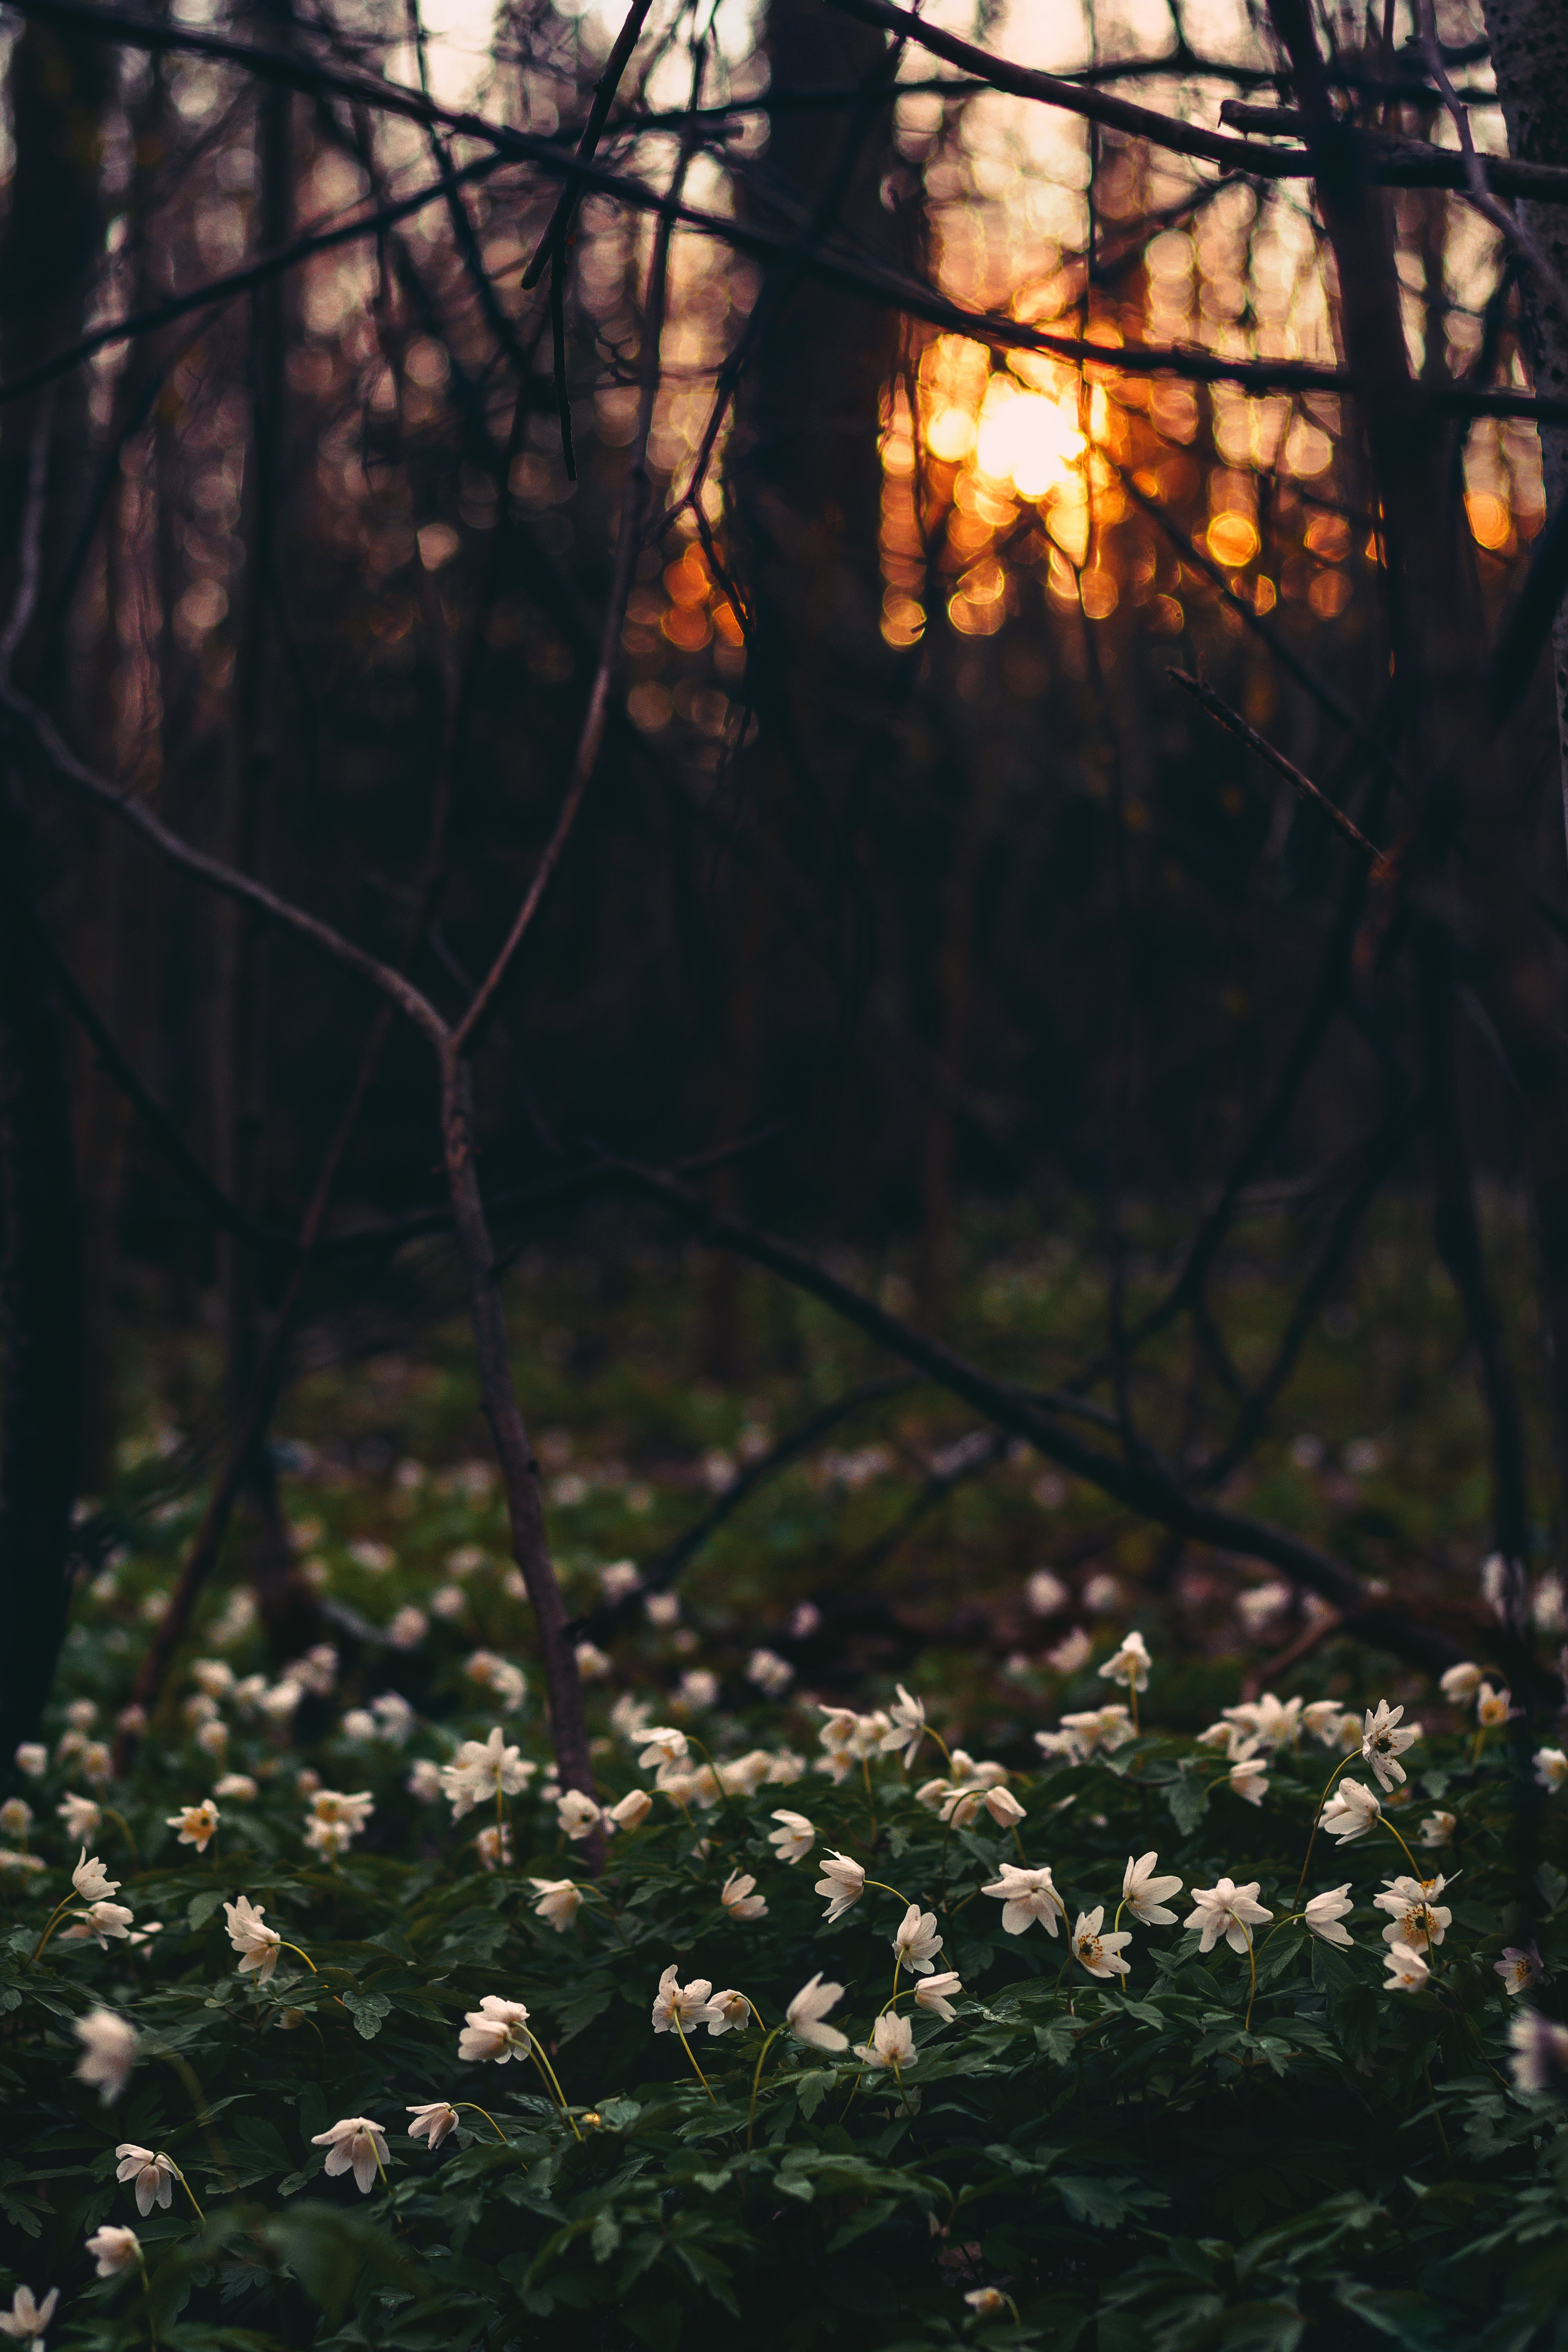 White Flower Field Under Twigs, Branches, Outdoors, White flowers, Trees, HQ Photo